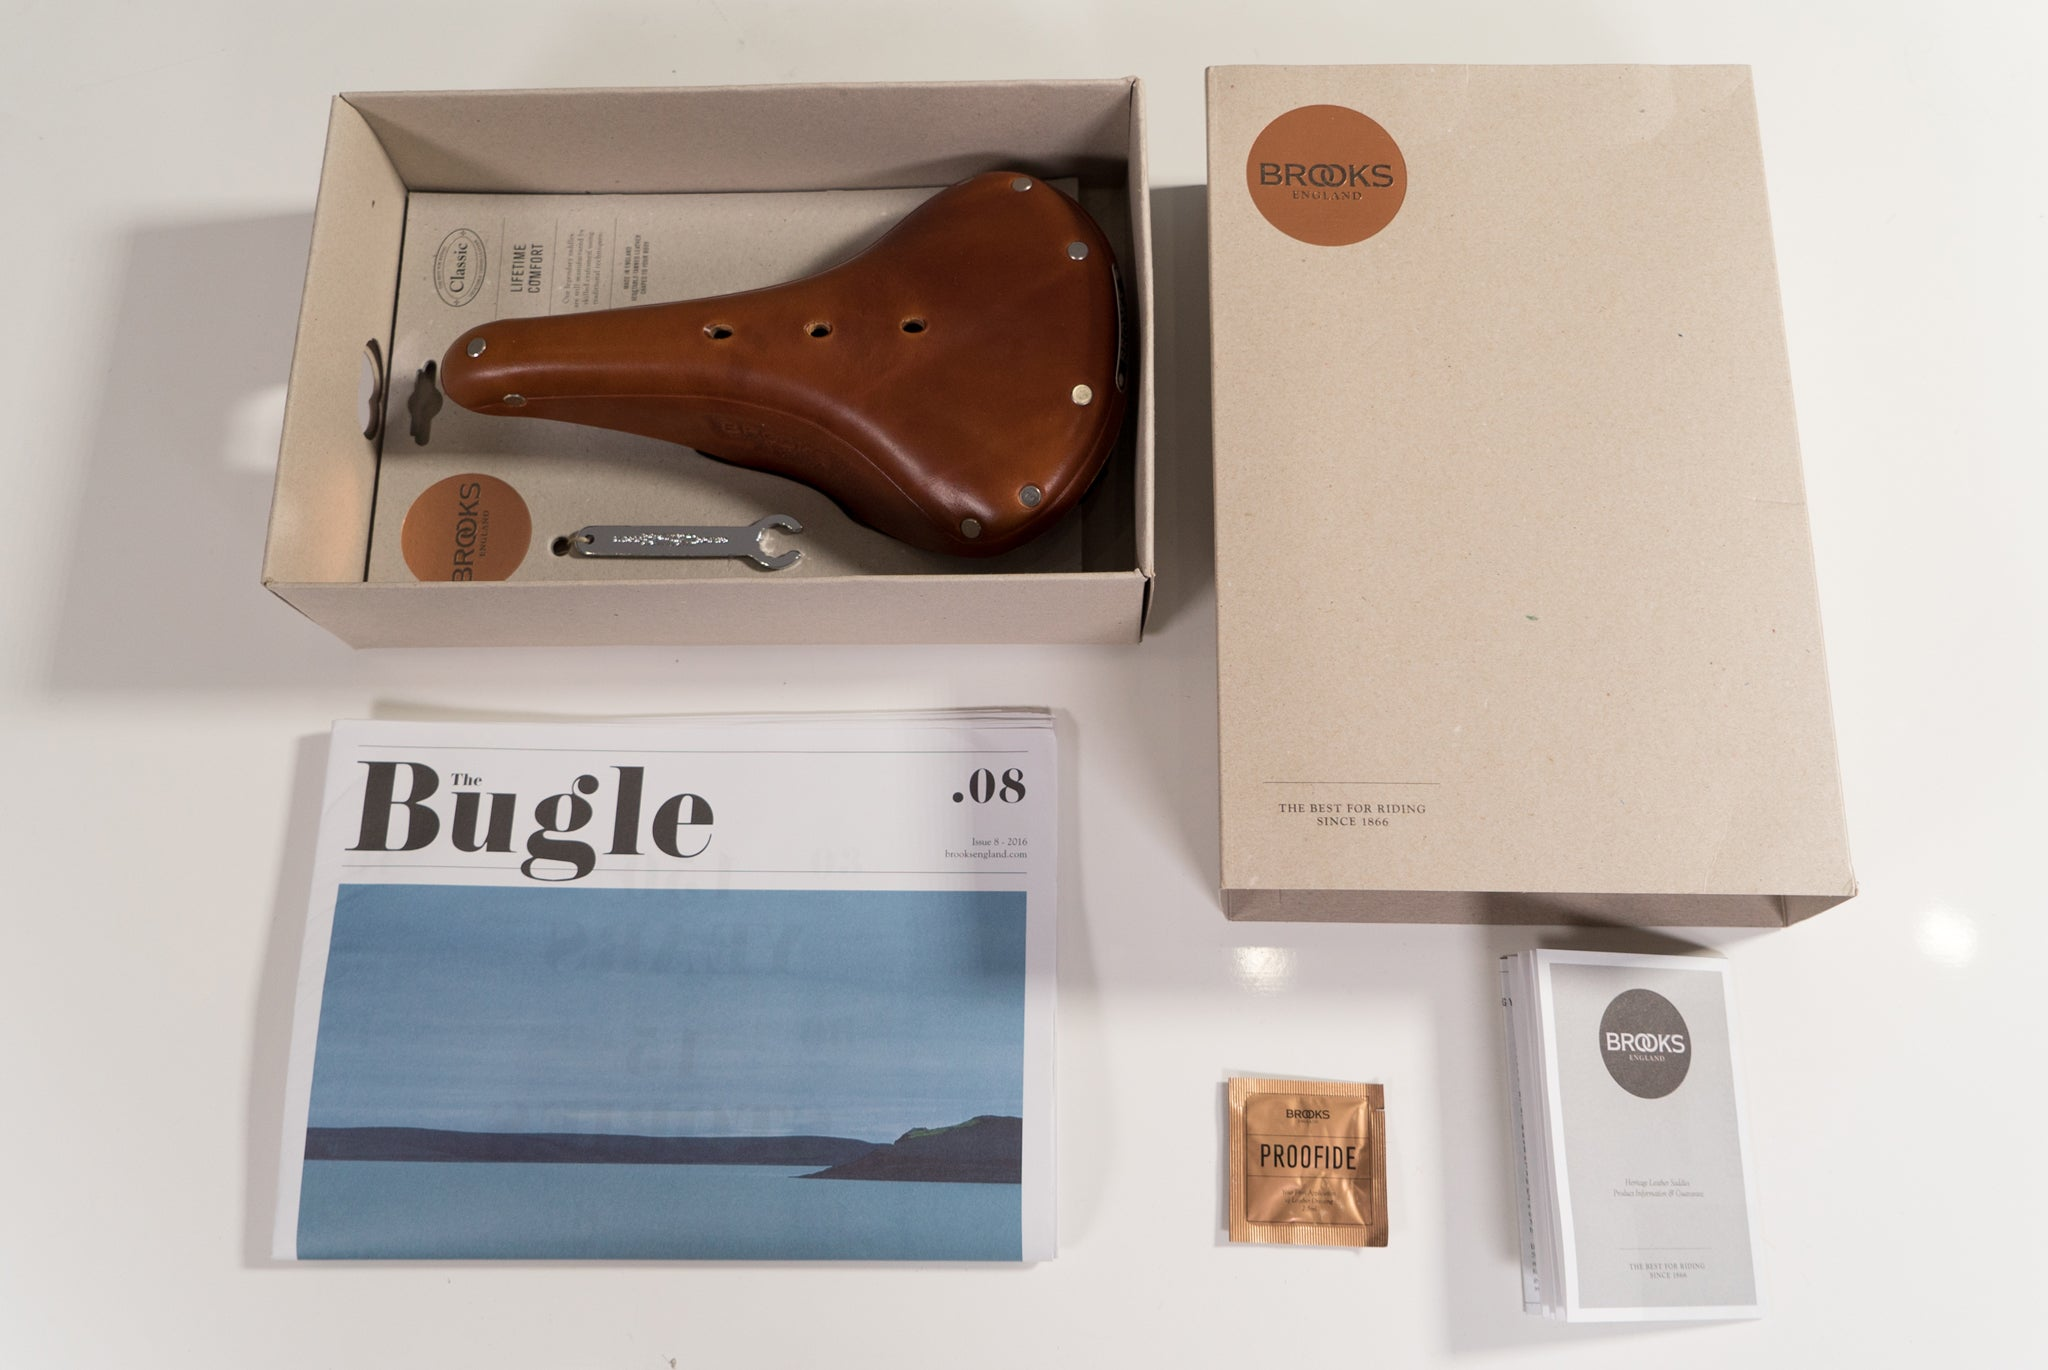 f383b79180 When you first open your new saddle and dig past your copy the Bugle,  you'll find a little packet of Proofide secured to the back of the  packaging.